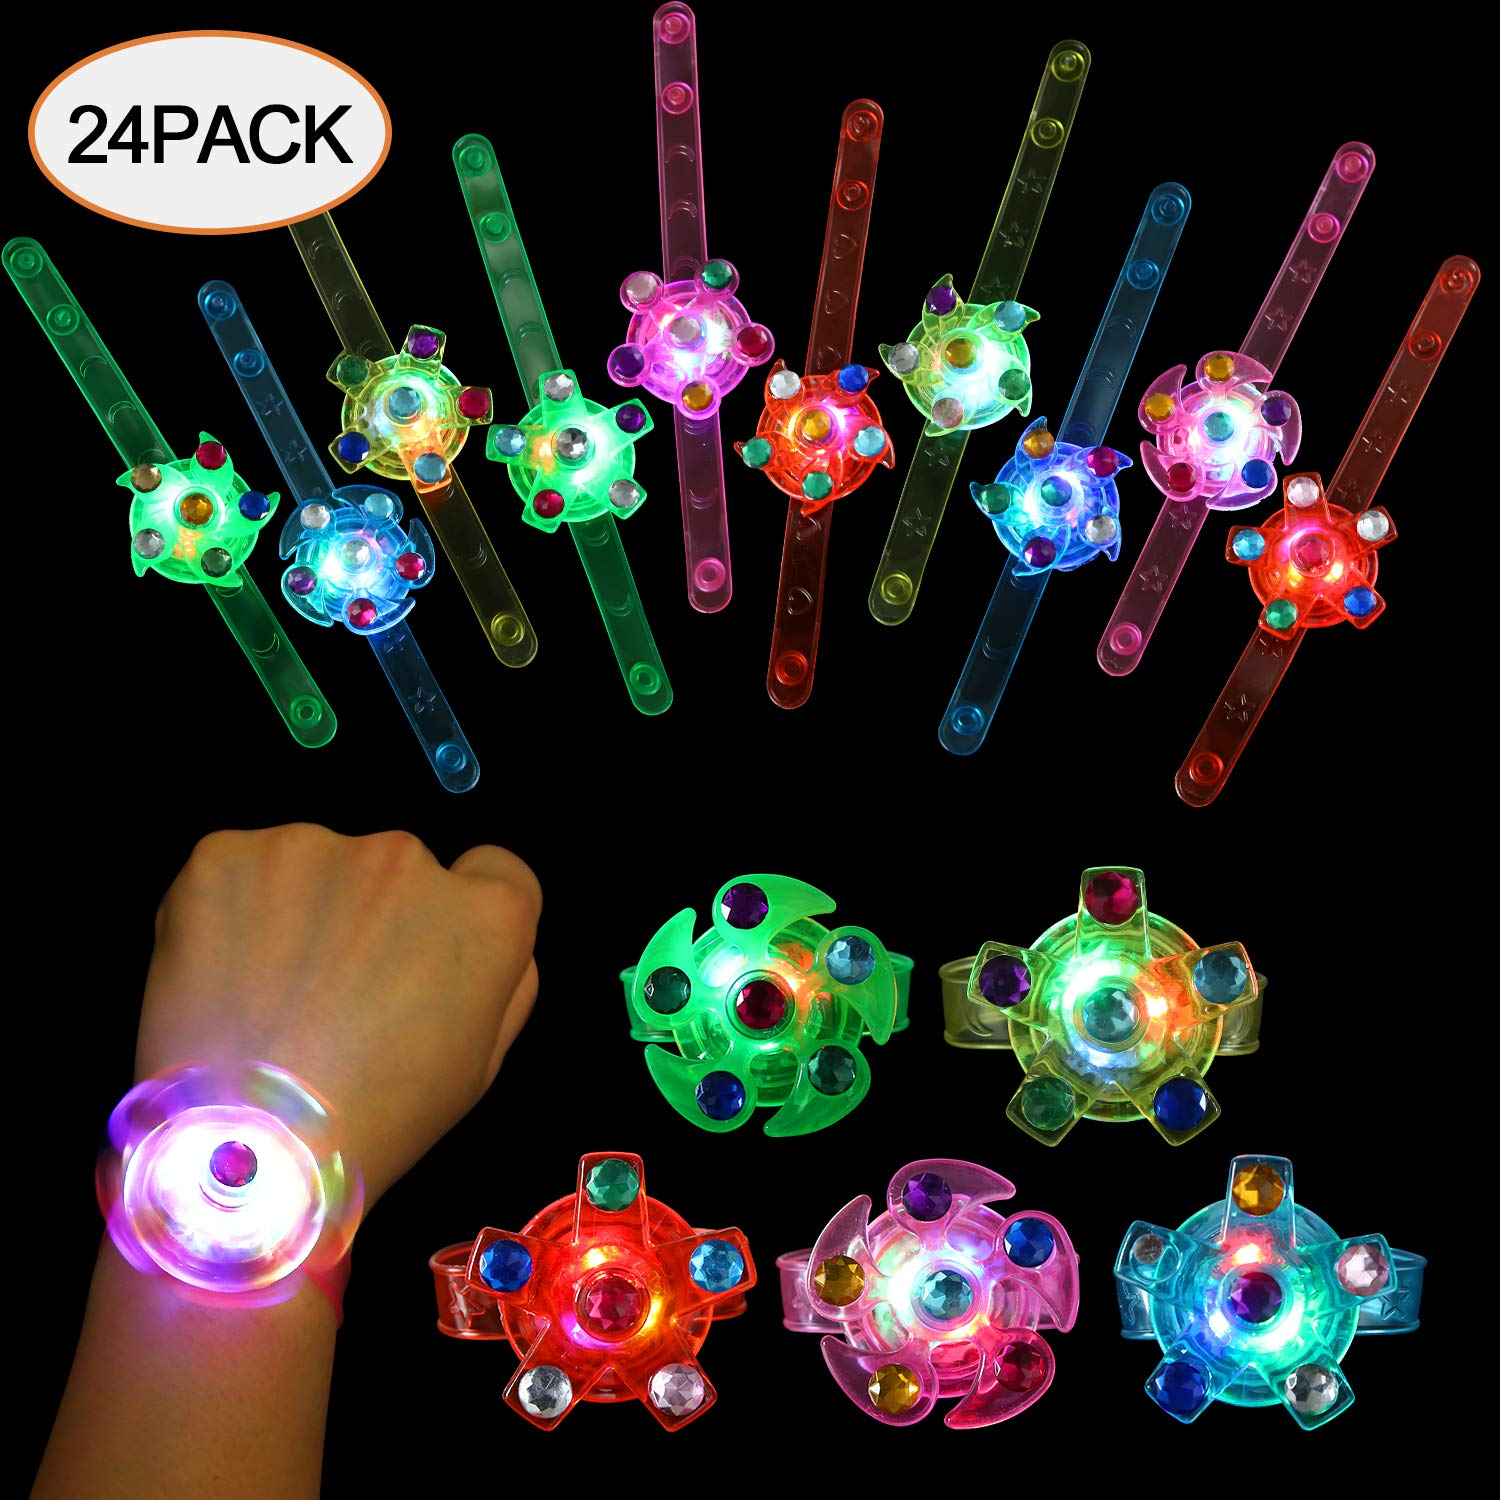 SCIONE Party Favors for Kids 24 Pack Light Up Bracelets Classroom Prizes Box Glow in The Dark Party Supplies Girls Boys Birthday Halloween Christmas Party Favor Wristband LED Fidget Toys Bulk by SCIONE